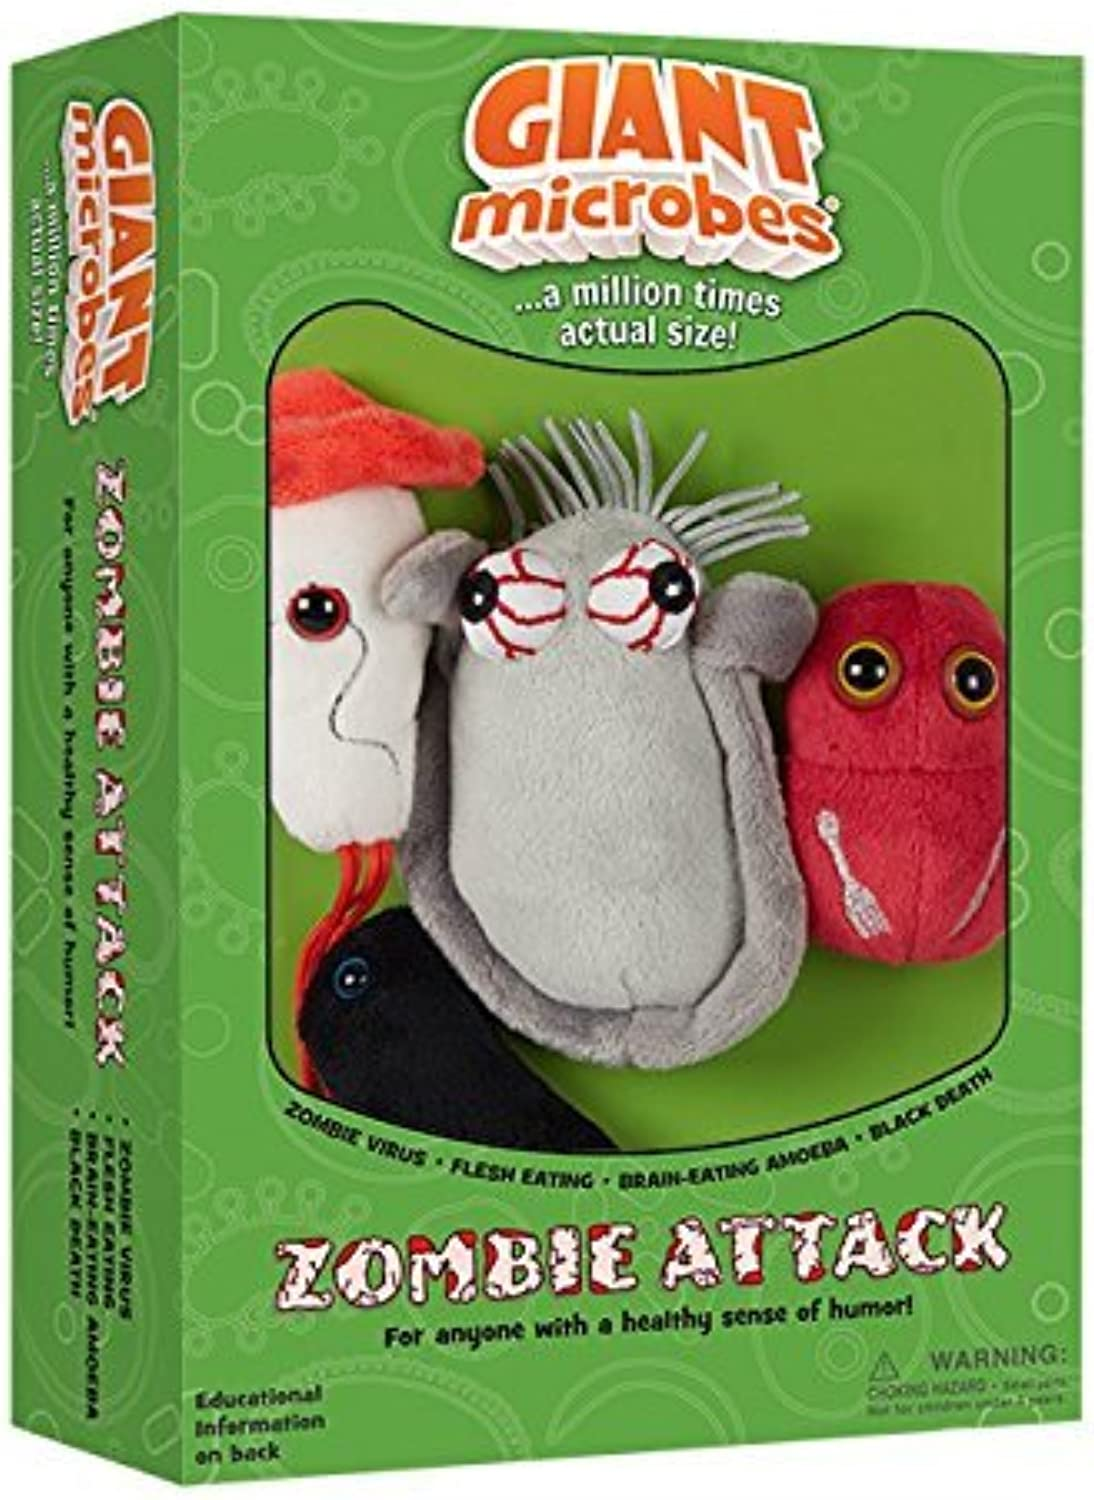 Giantmicrobes Themed Gift Boxes  Zombie Attack by Giant Microbes